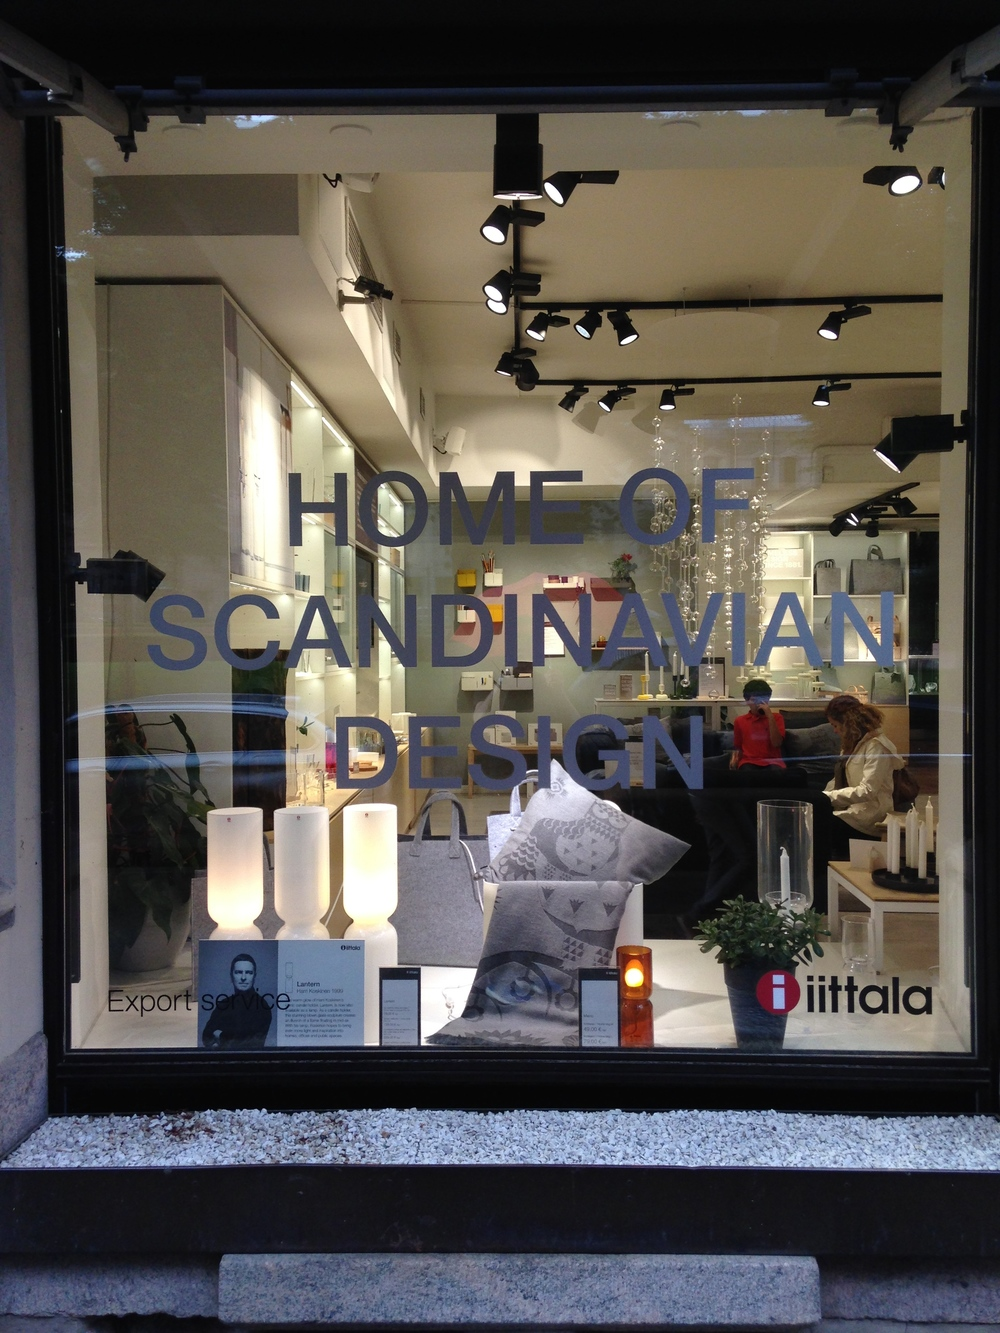 Iittala, the home of Scandinavian Design